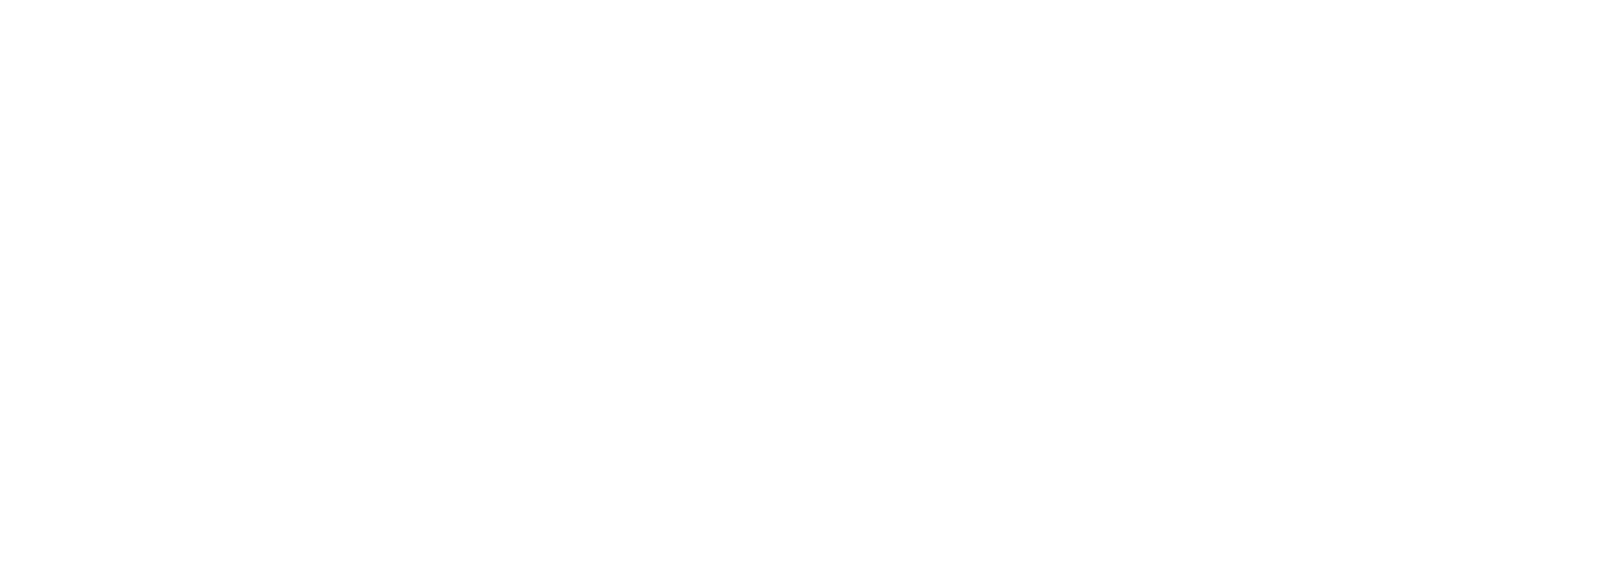 cgood - Chief Giving Officer On Demand